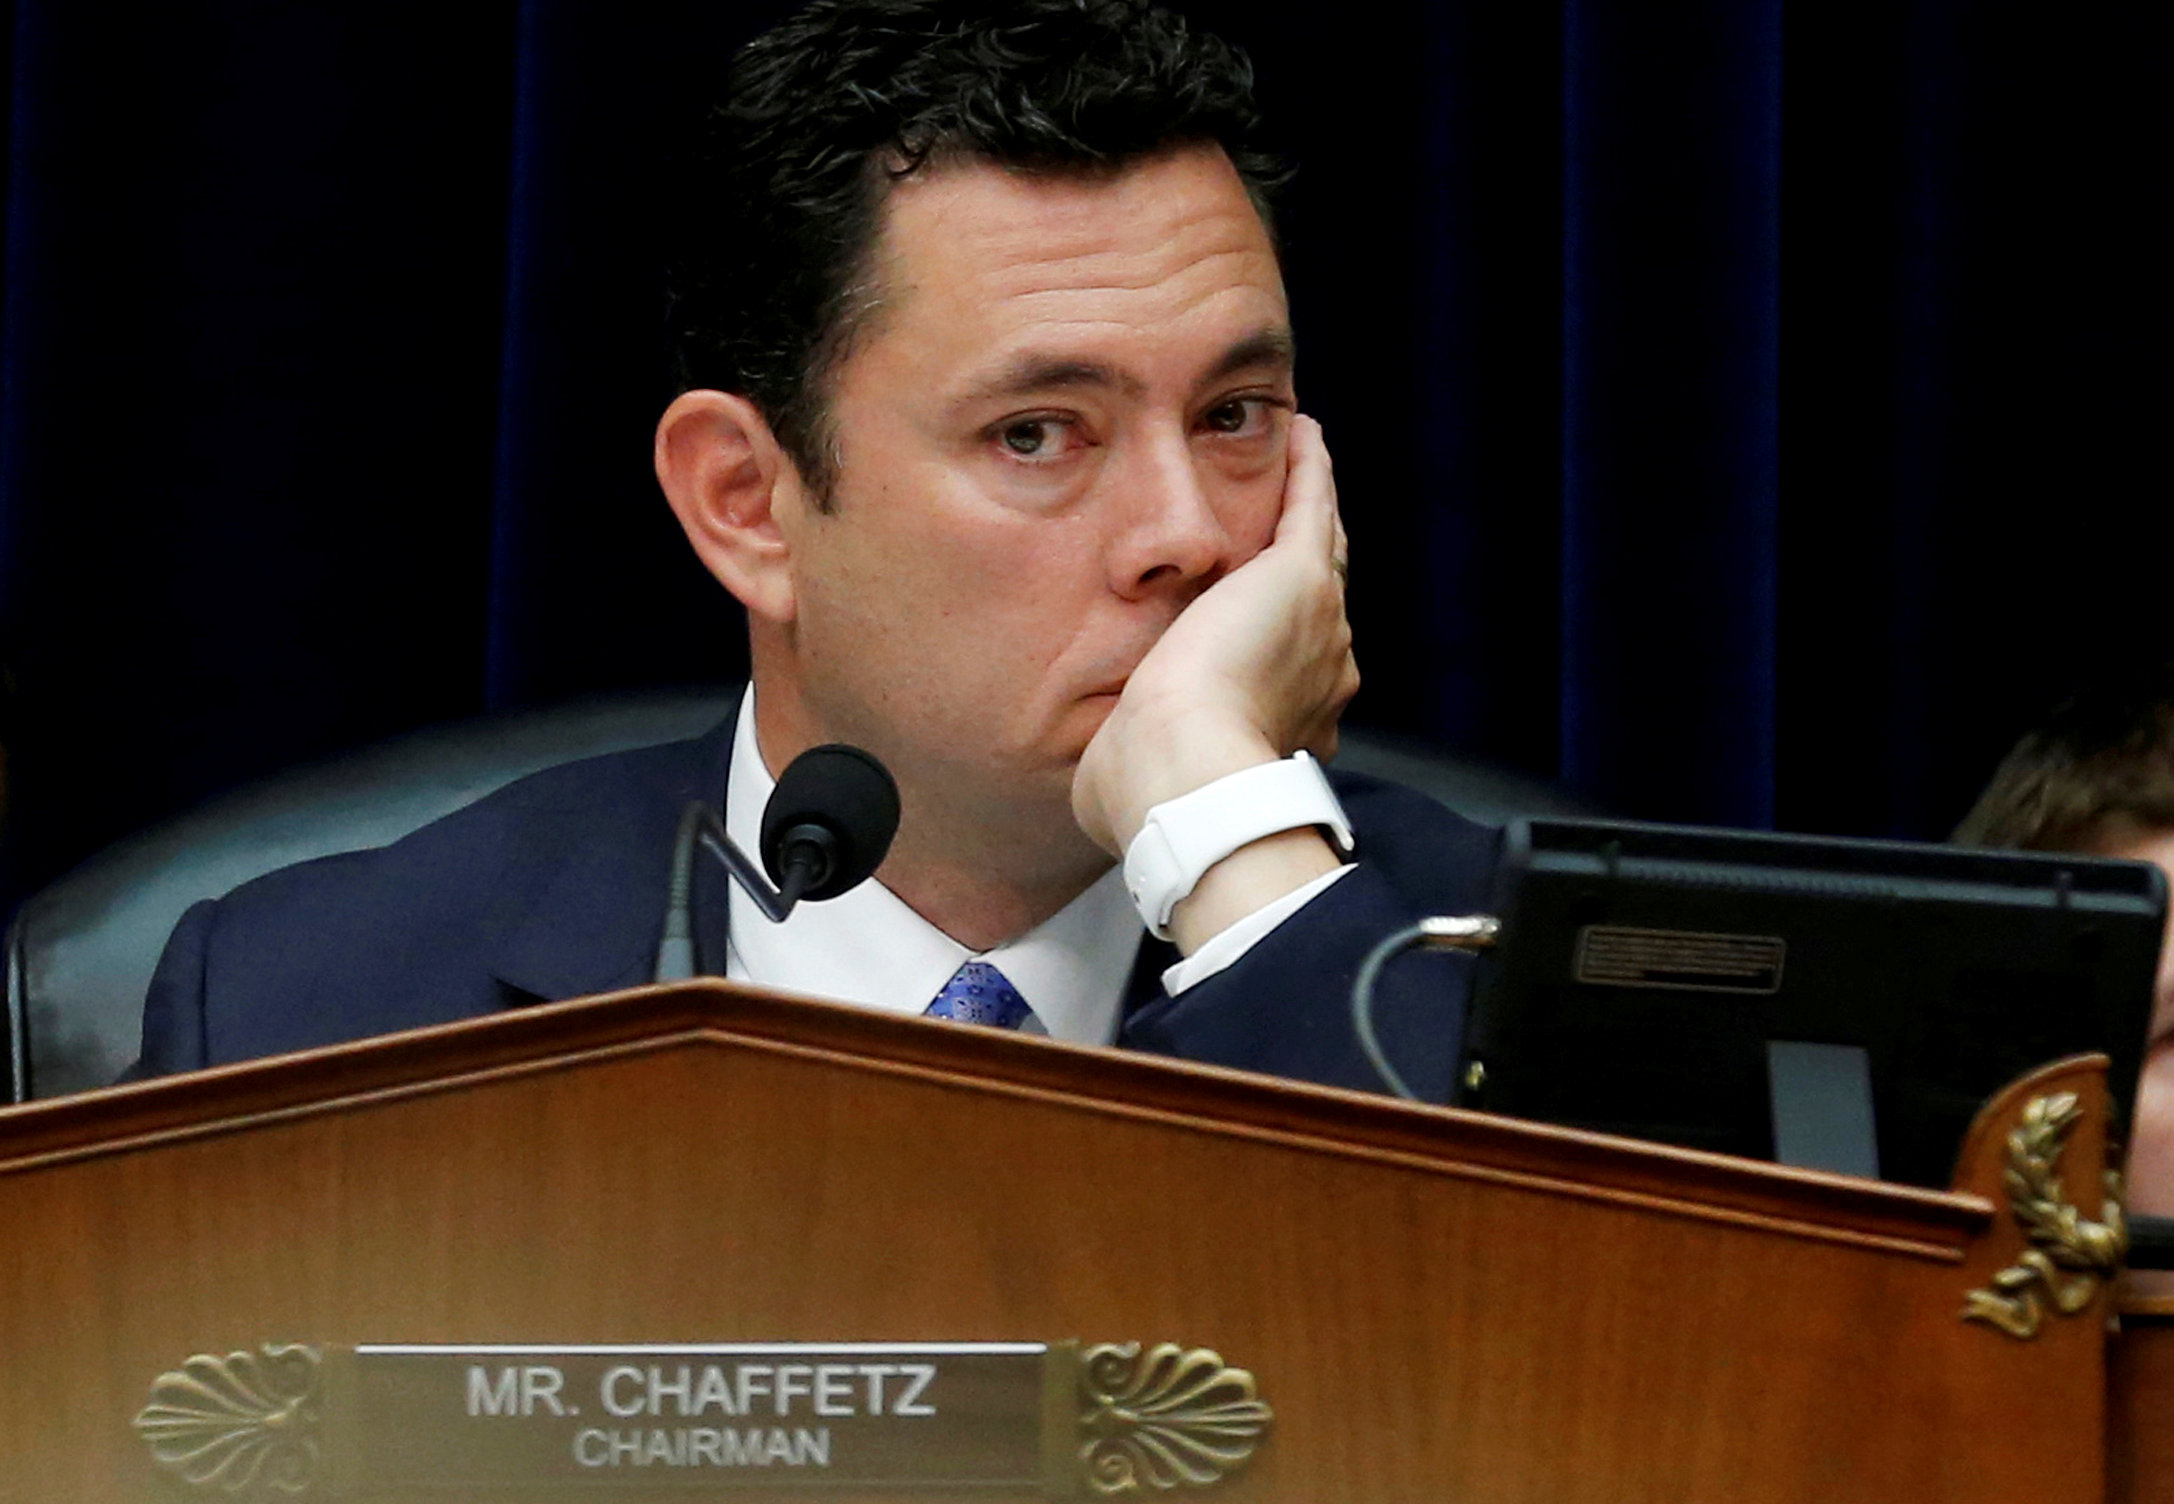 House Oversight and Government Reform Committee Chairman Jason Chaffetz (R-UT) during a committee hearing about the private email server of Democratic presidential nominee Hillary Clinton, used during her tenure as Secretary of State, on Capitol Hill in Washington on Sep. 13, 2016. (REUTERS/Jonathan Ernst)